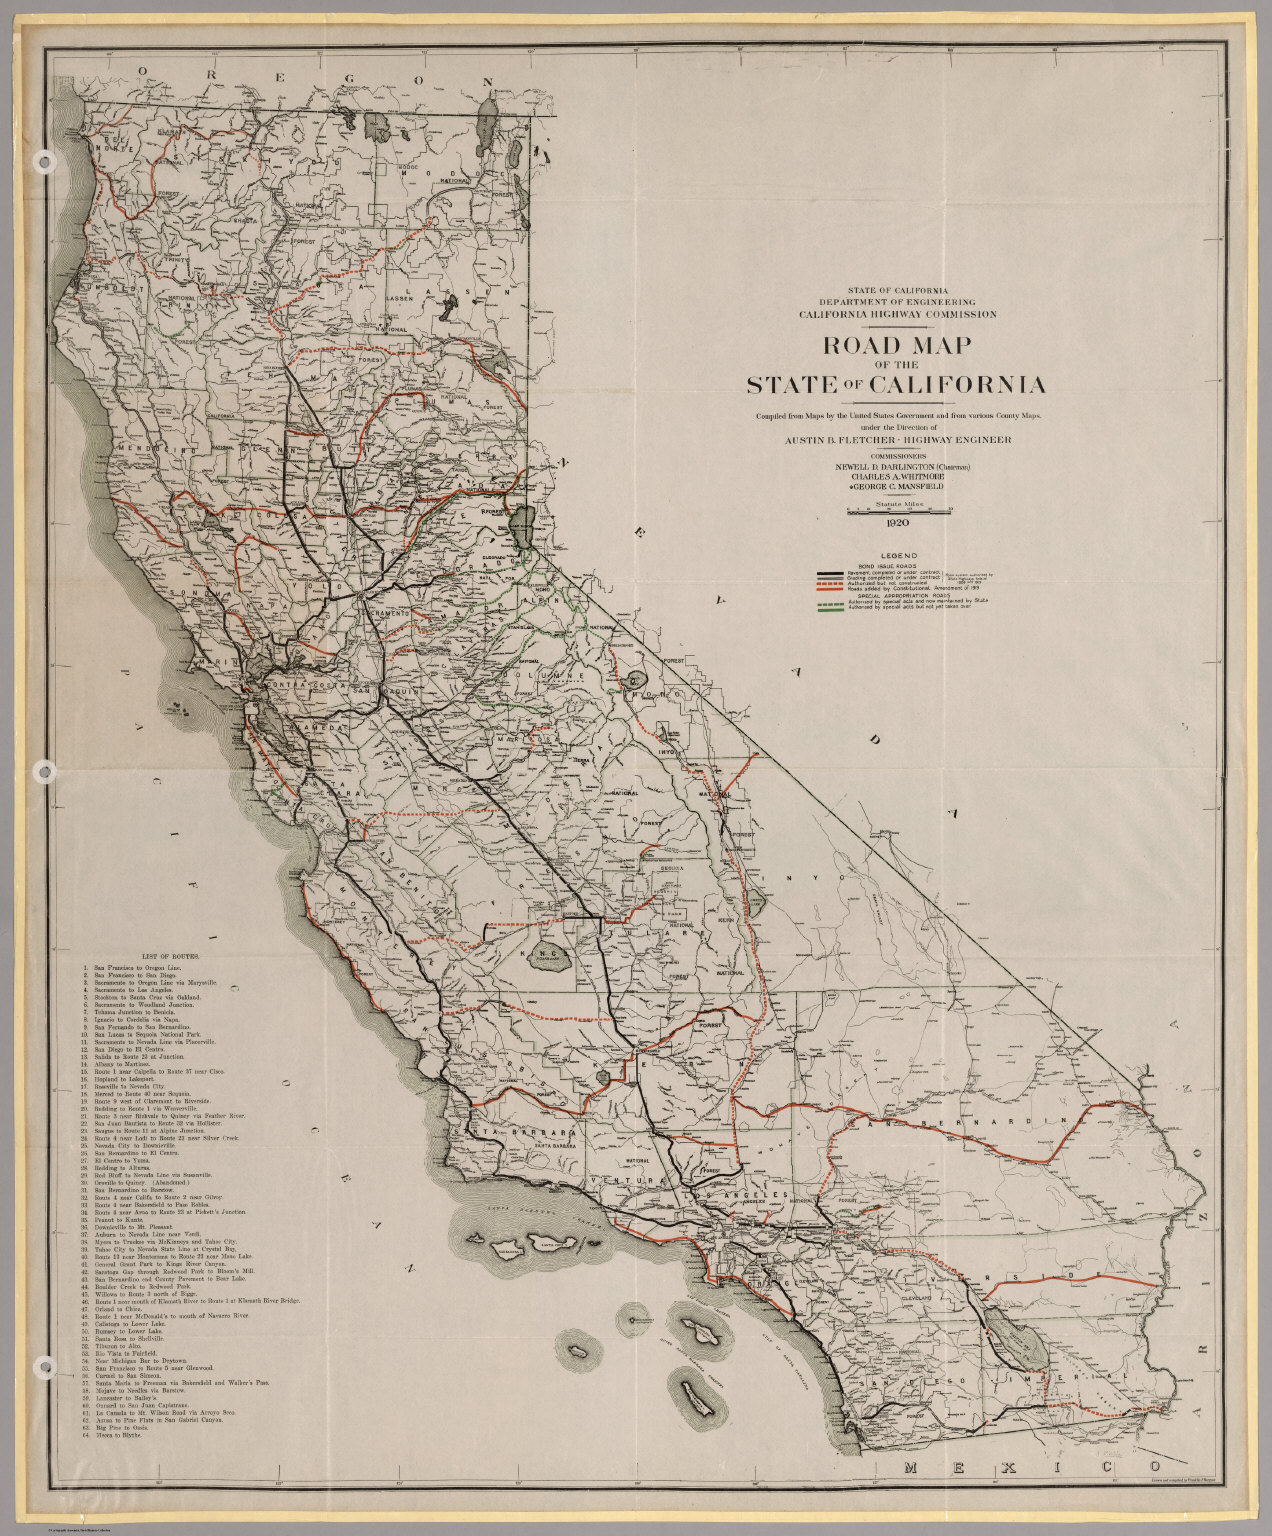 Road Map Of The State Of California David Rumsey - Highway map of california